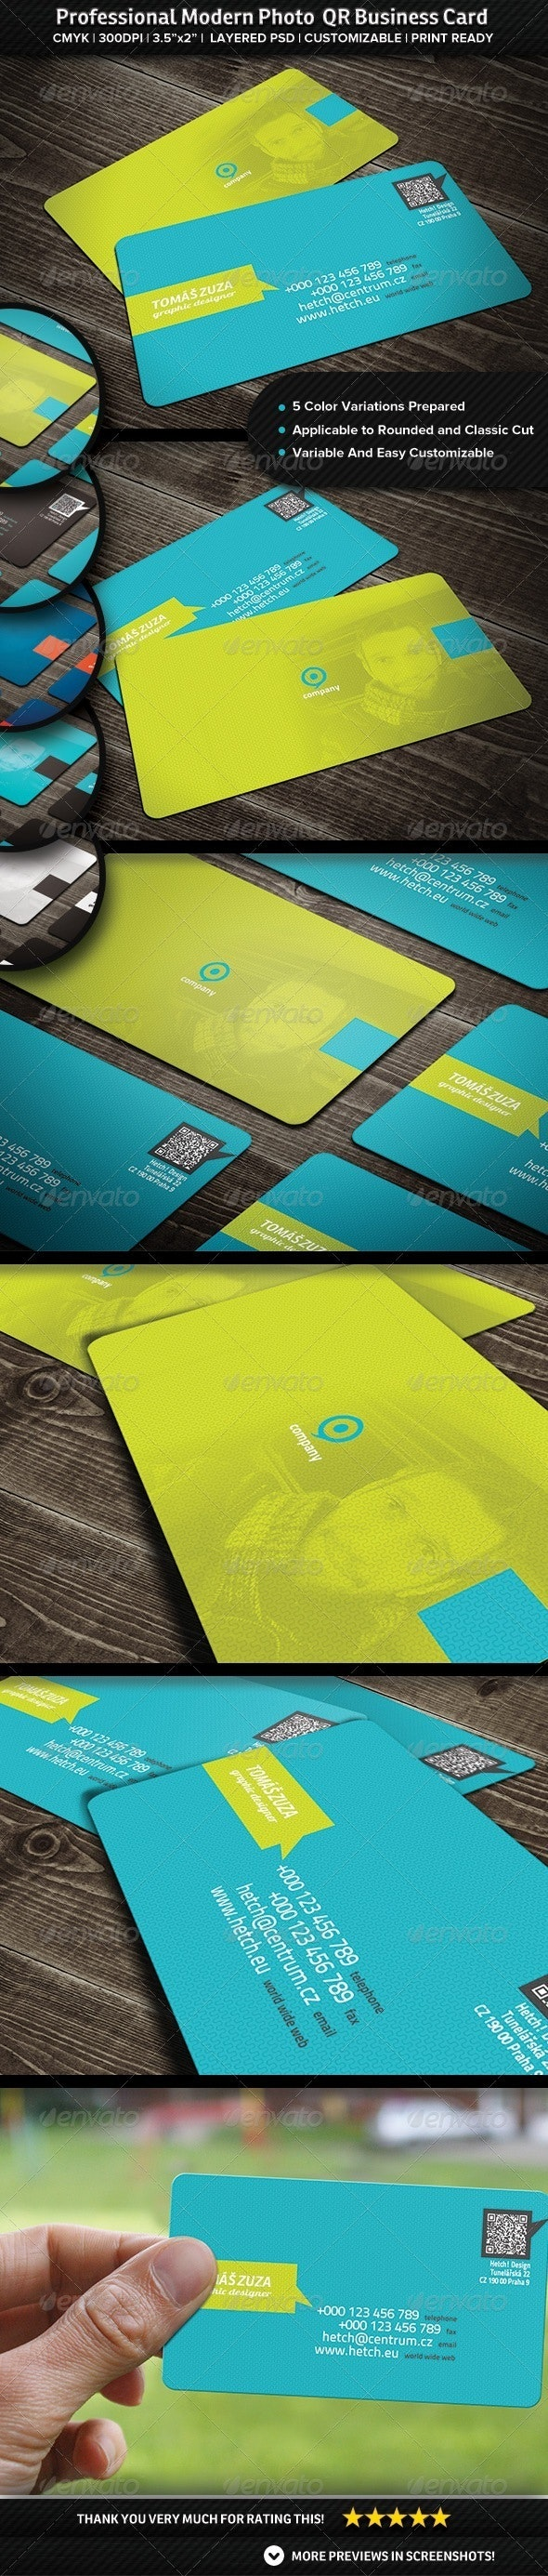 Professional Modern Photo QR Business Card - Creative Business Cards